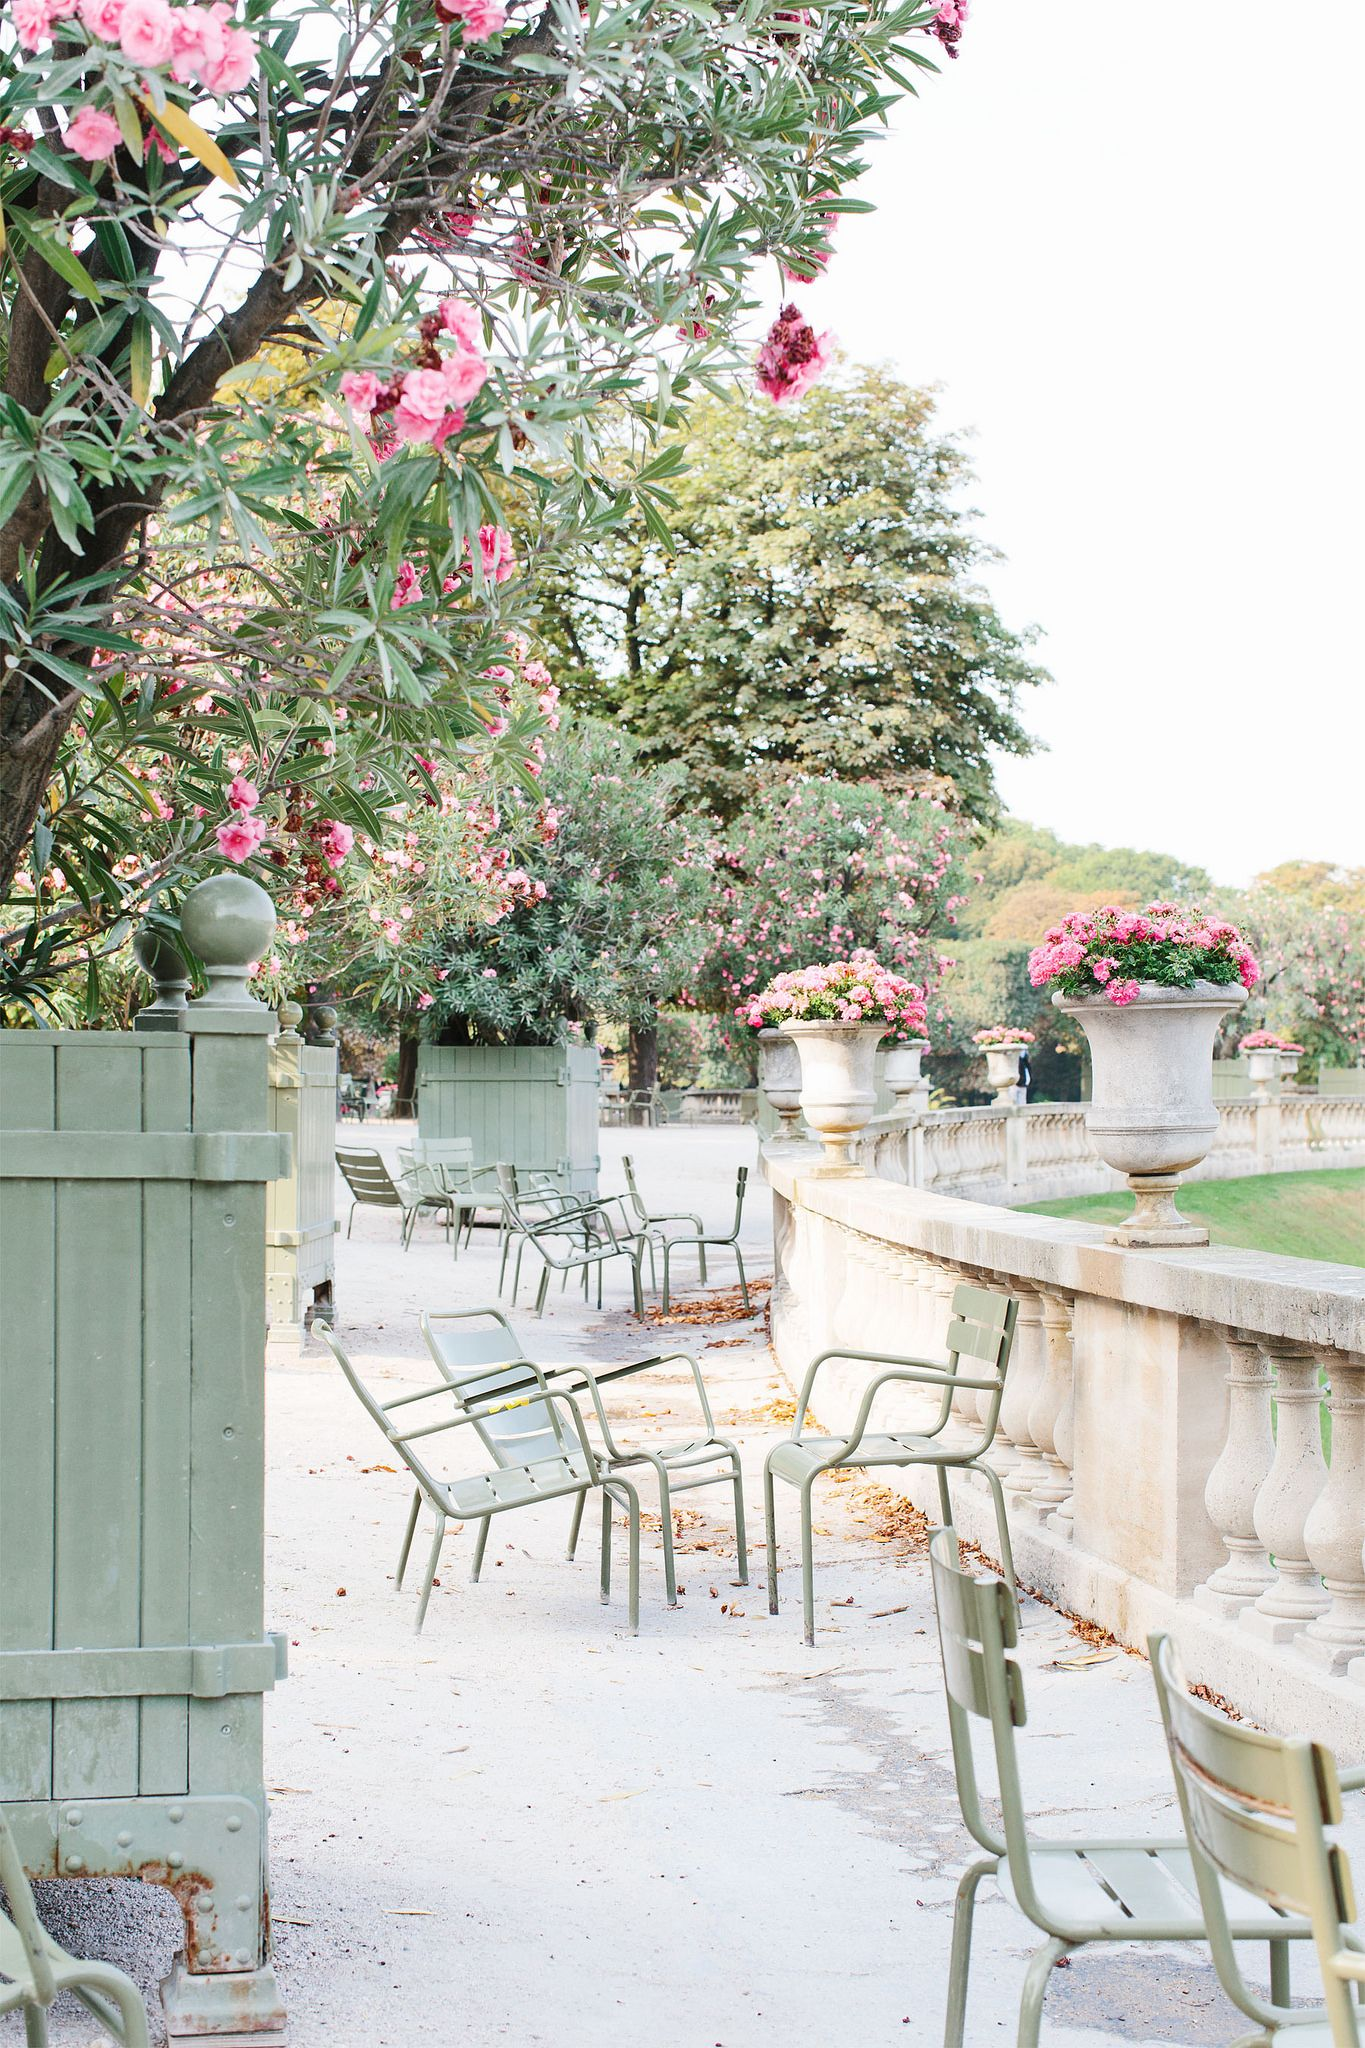 Jardin Du Luxembourg Jardin Du Luxembourg Jardin Luxembourg